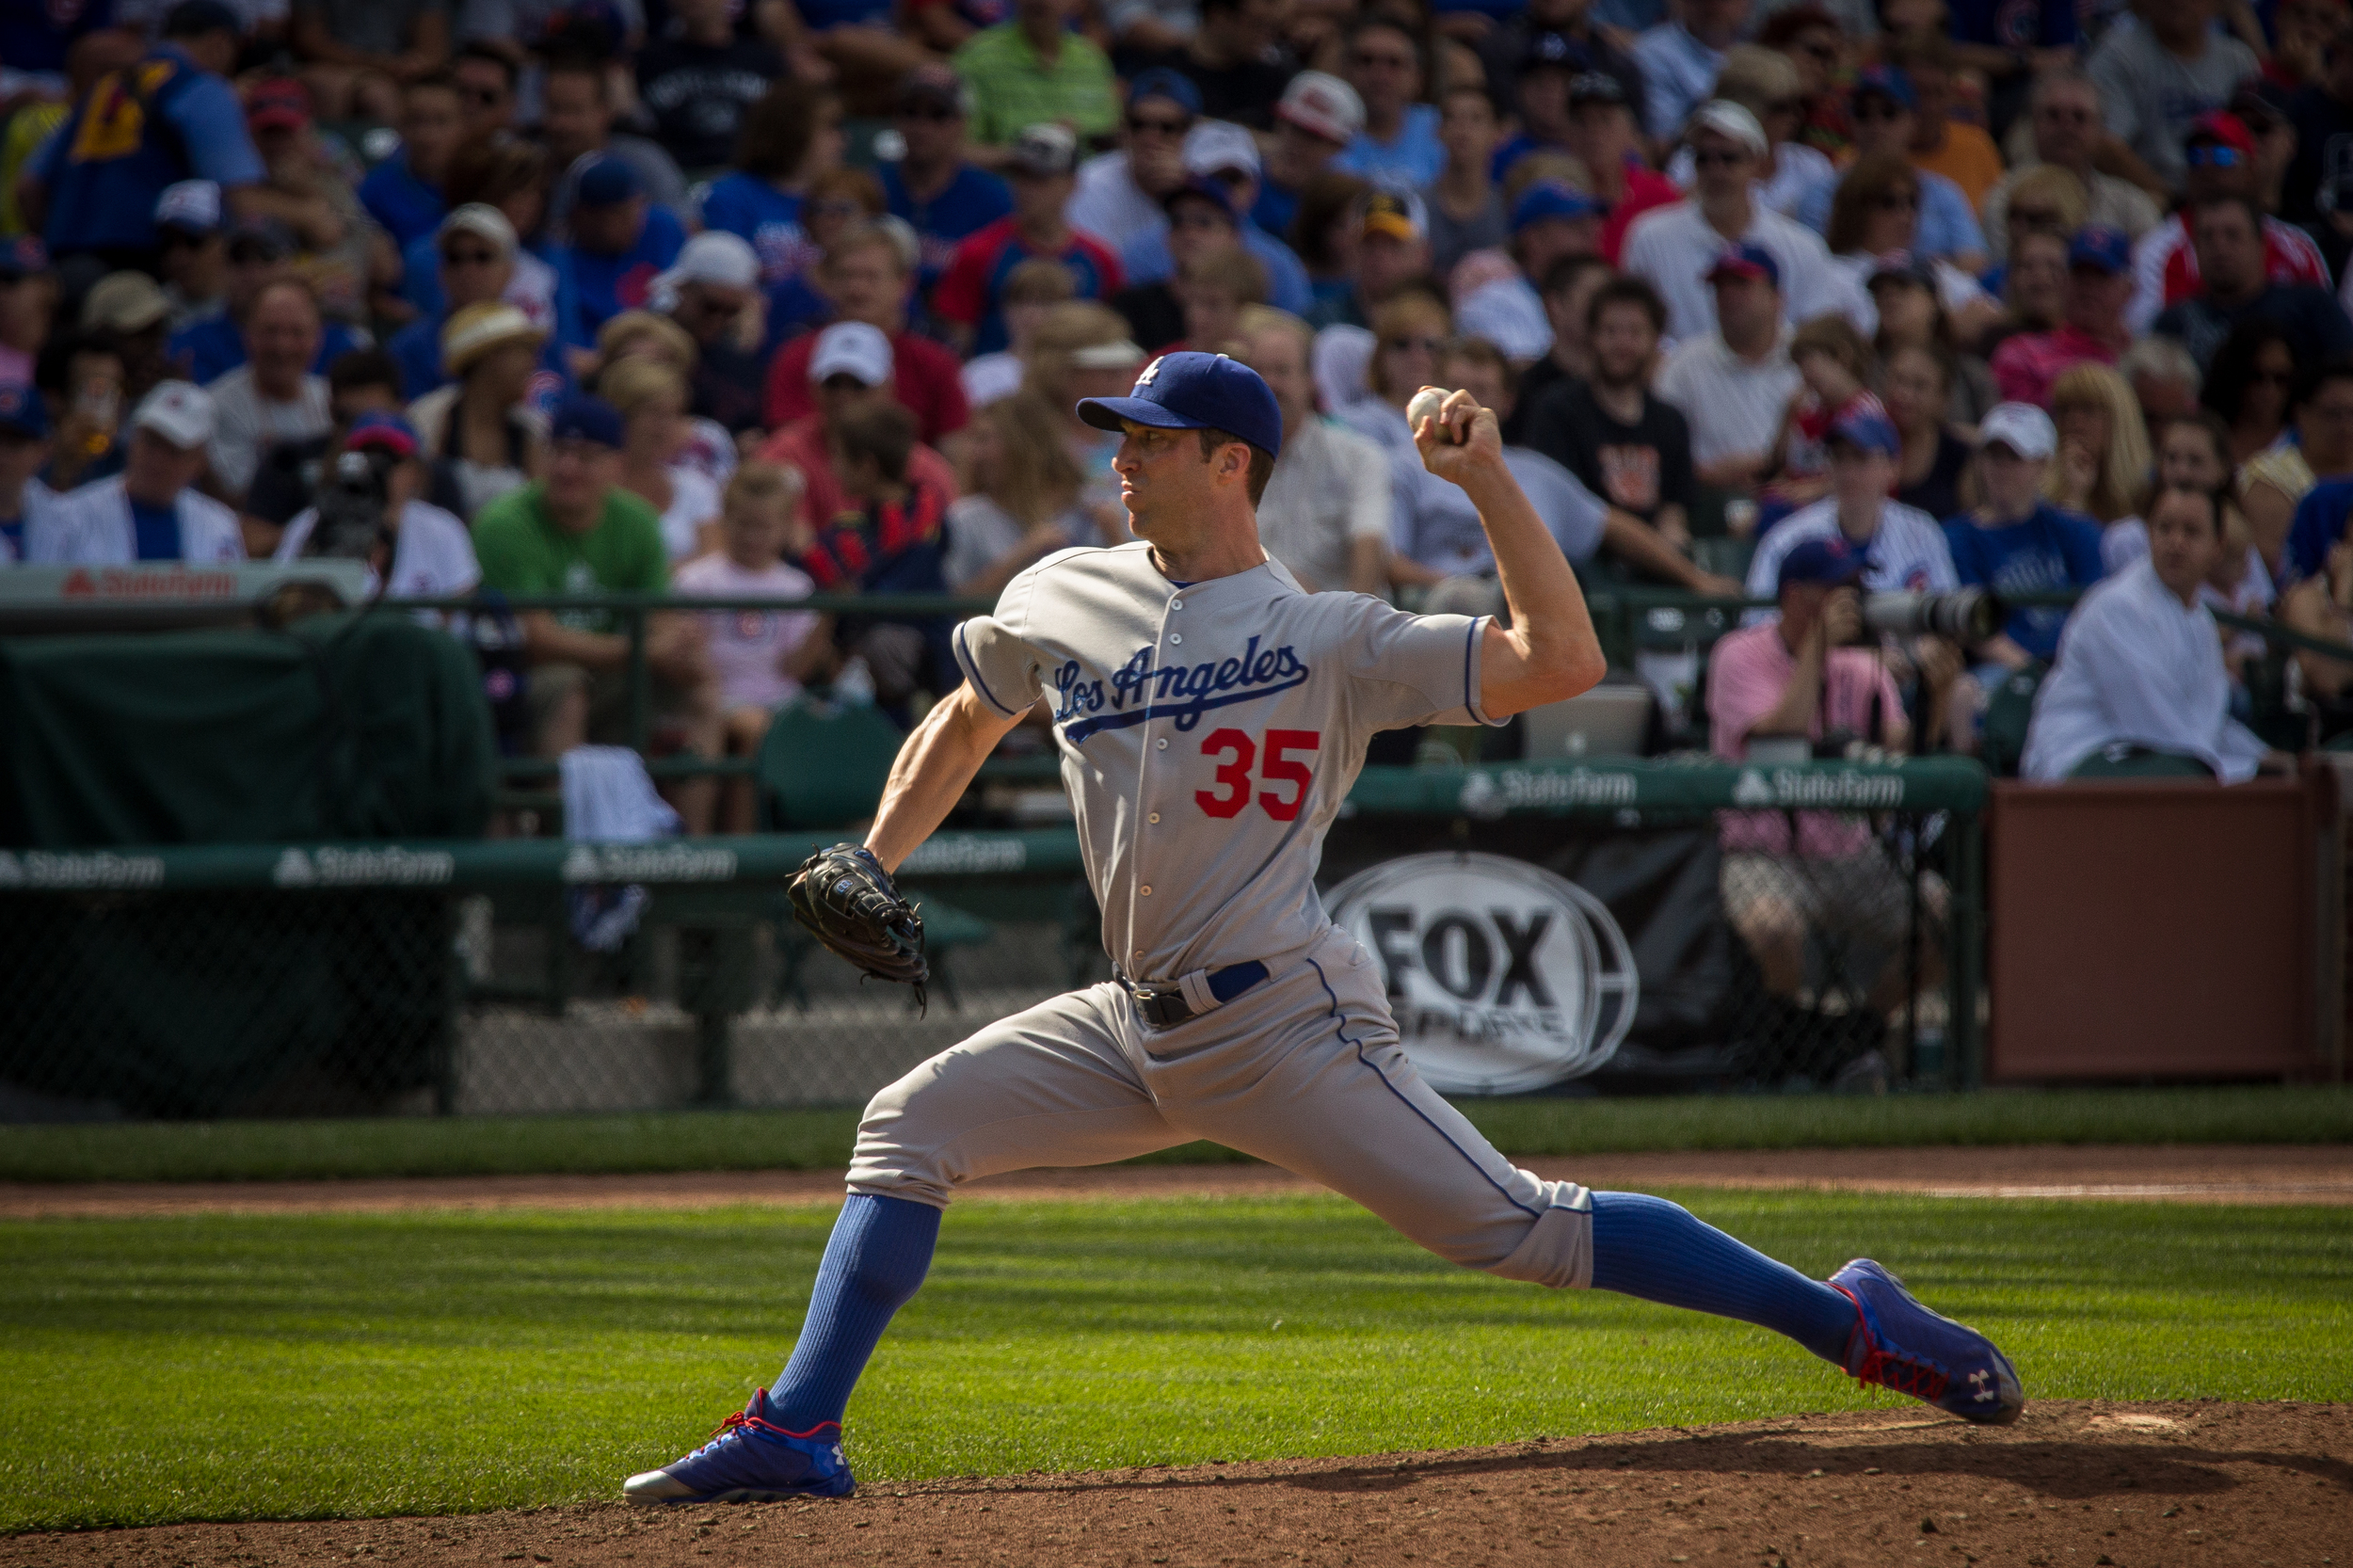 Chris Capuano pitches for the Los Angeles Dodgers against the Chicago Cubs at Wrigley Field